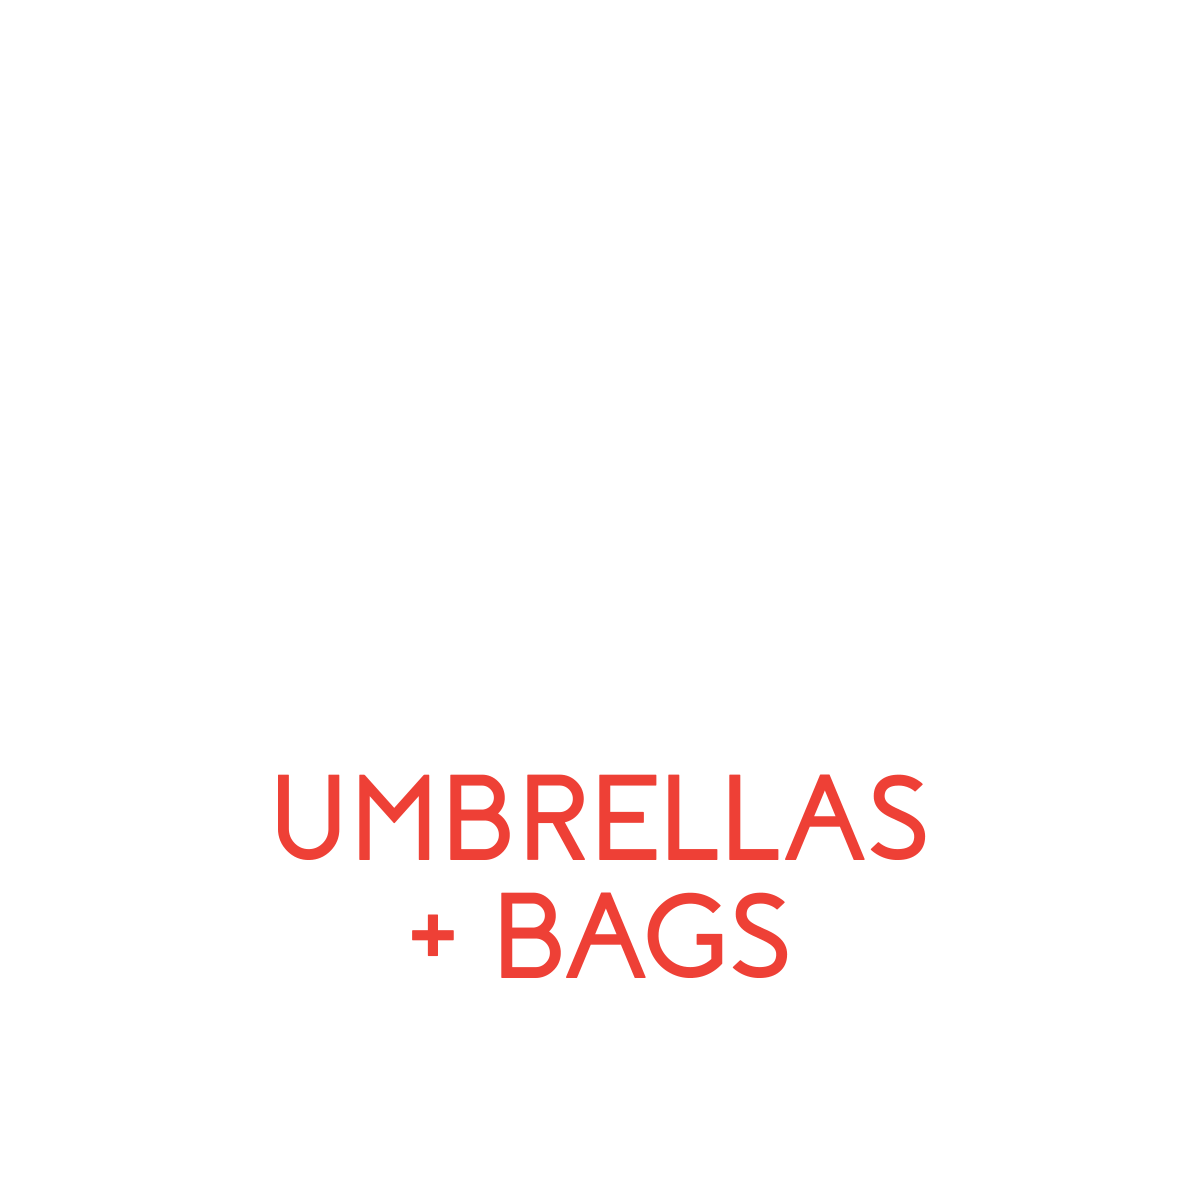 branded umbrellas and bags